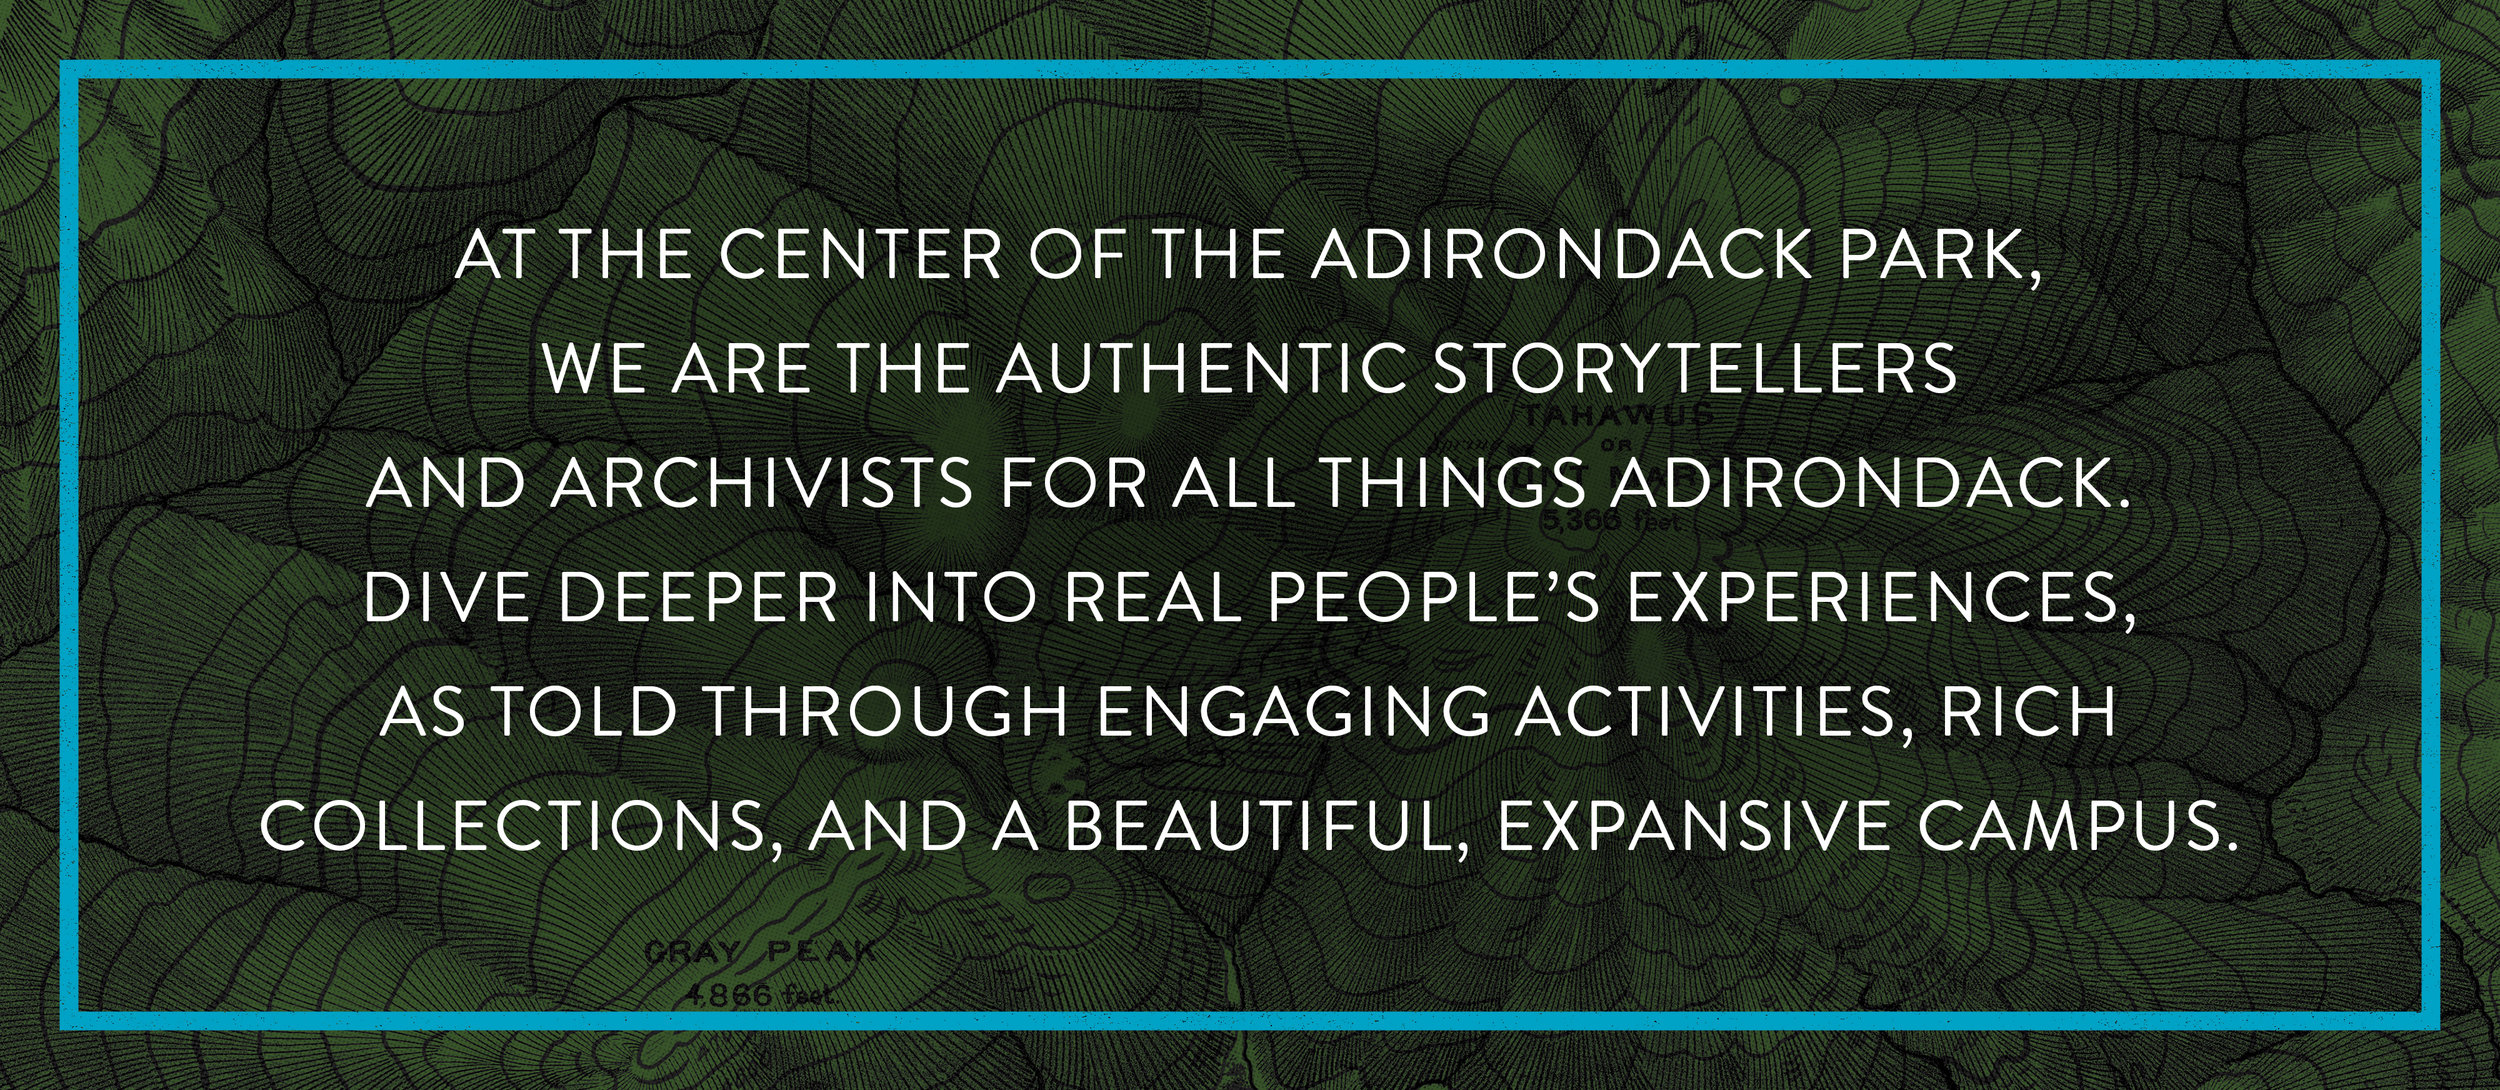 2018 Adirondack Experience campaign brand promise over historical topography